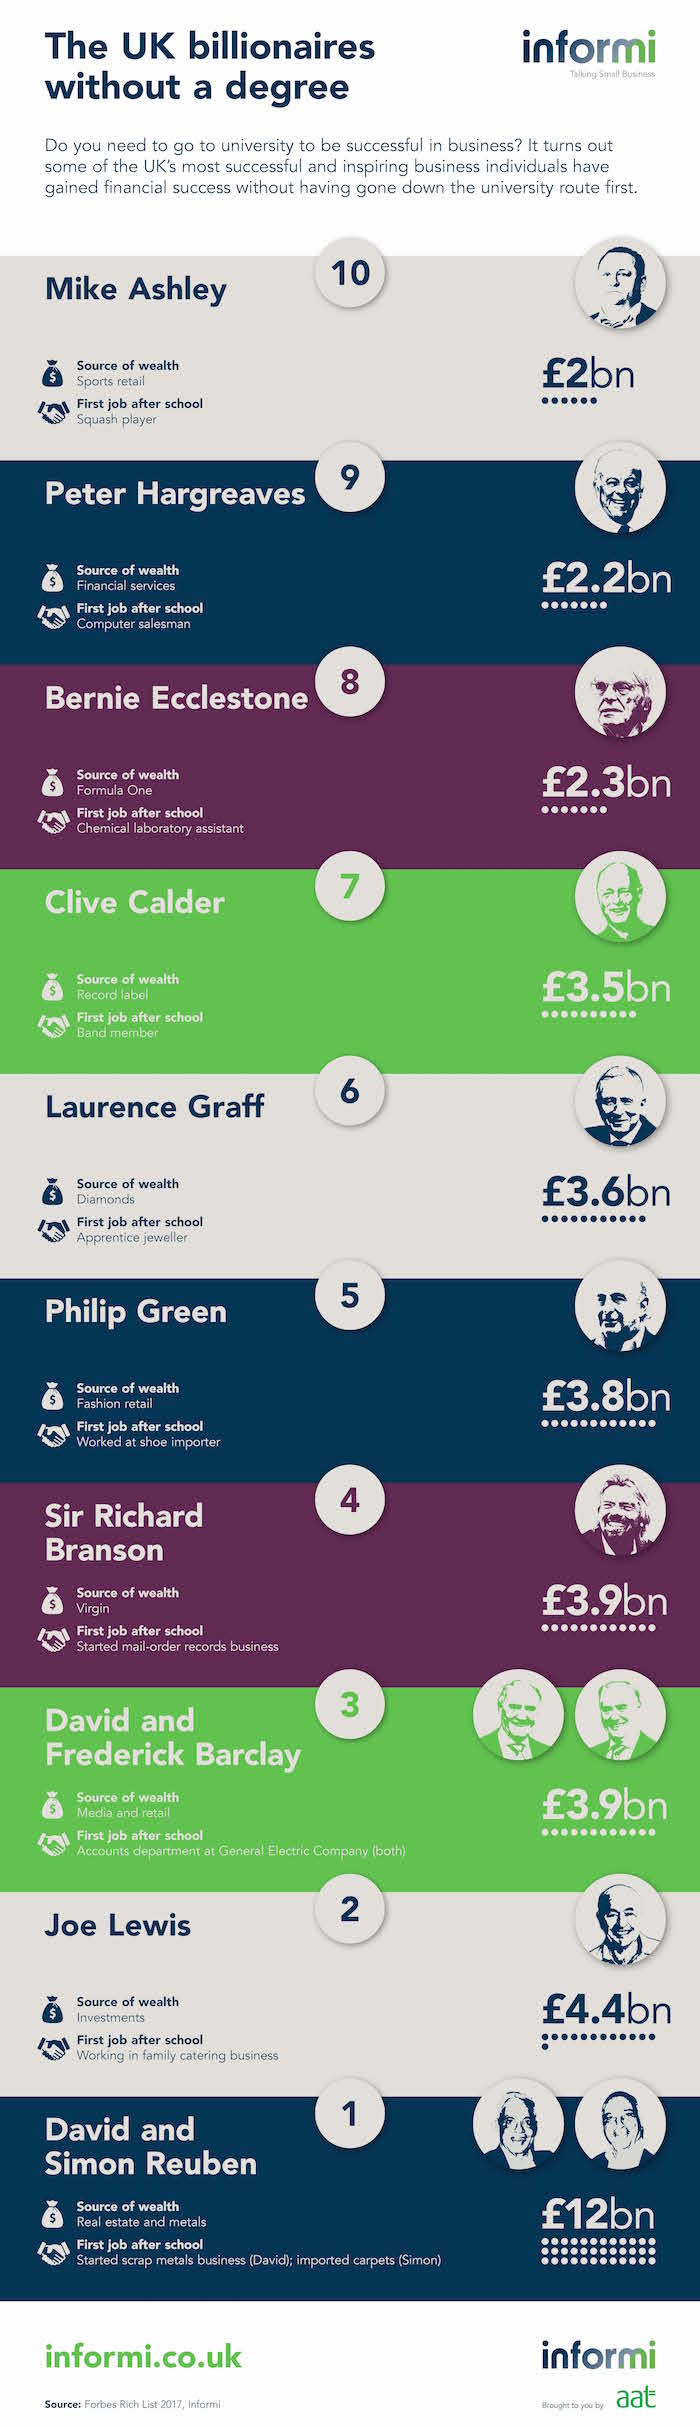 Top 10 UK billionaires without a degree infographic[3] copy